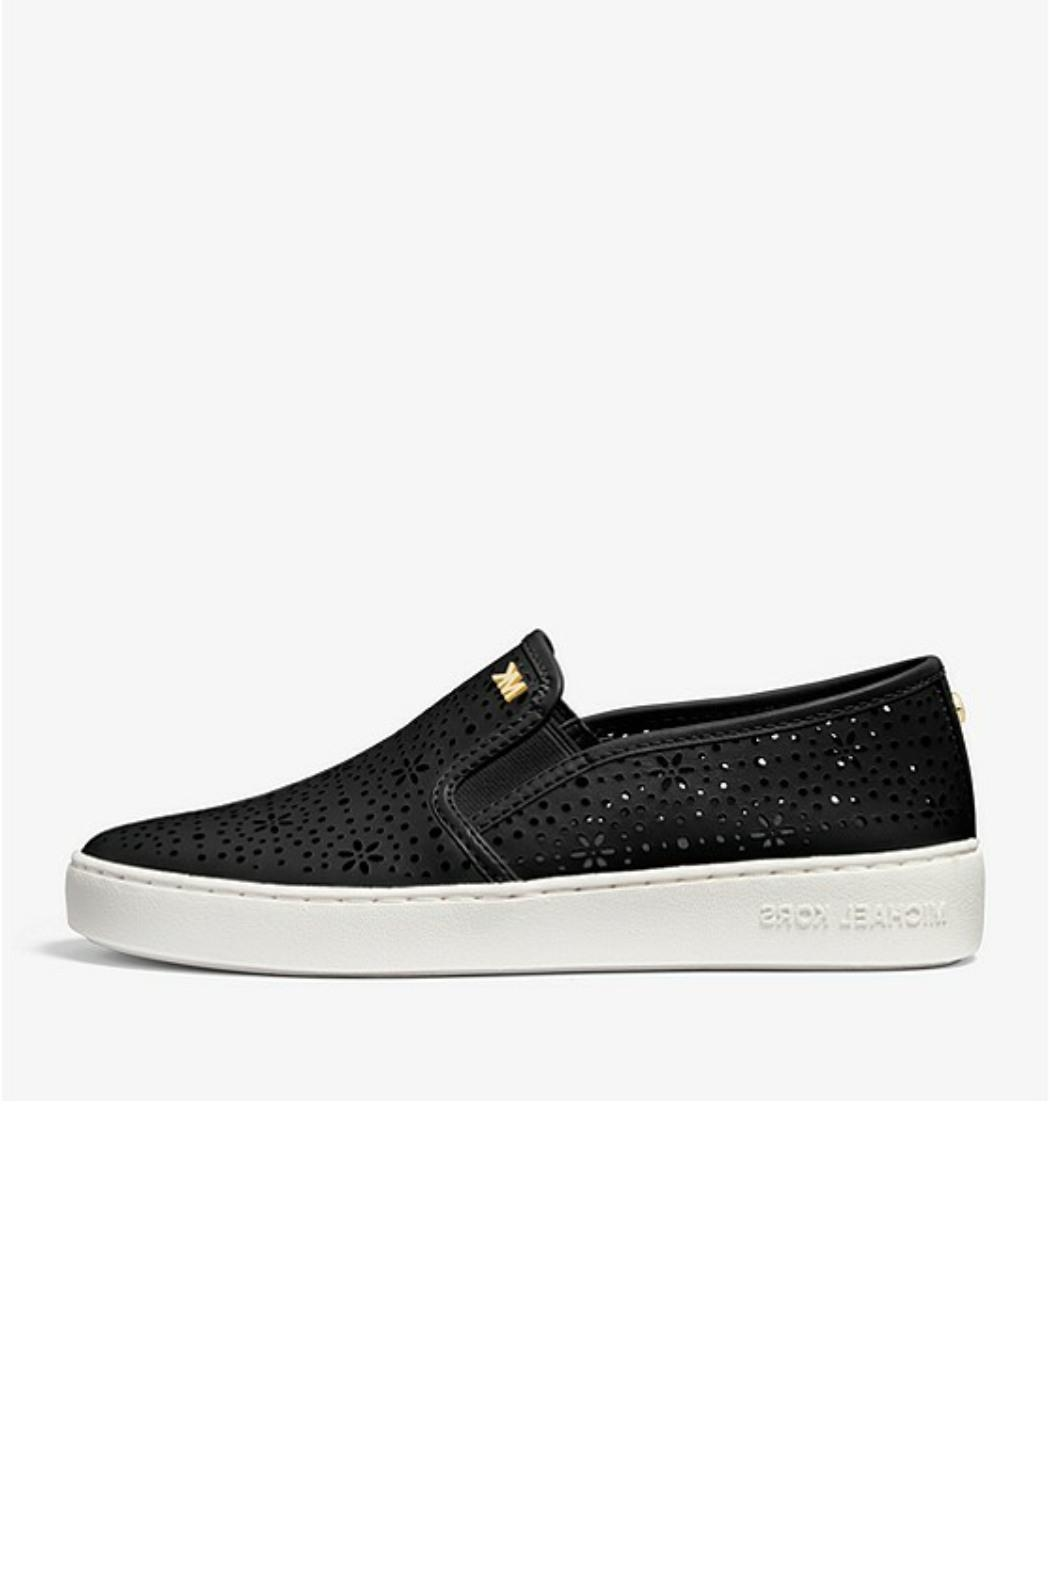 Michael by Michael Kors Laser Cut Out Sneaker - Front Cropped Image